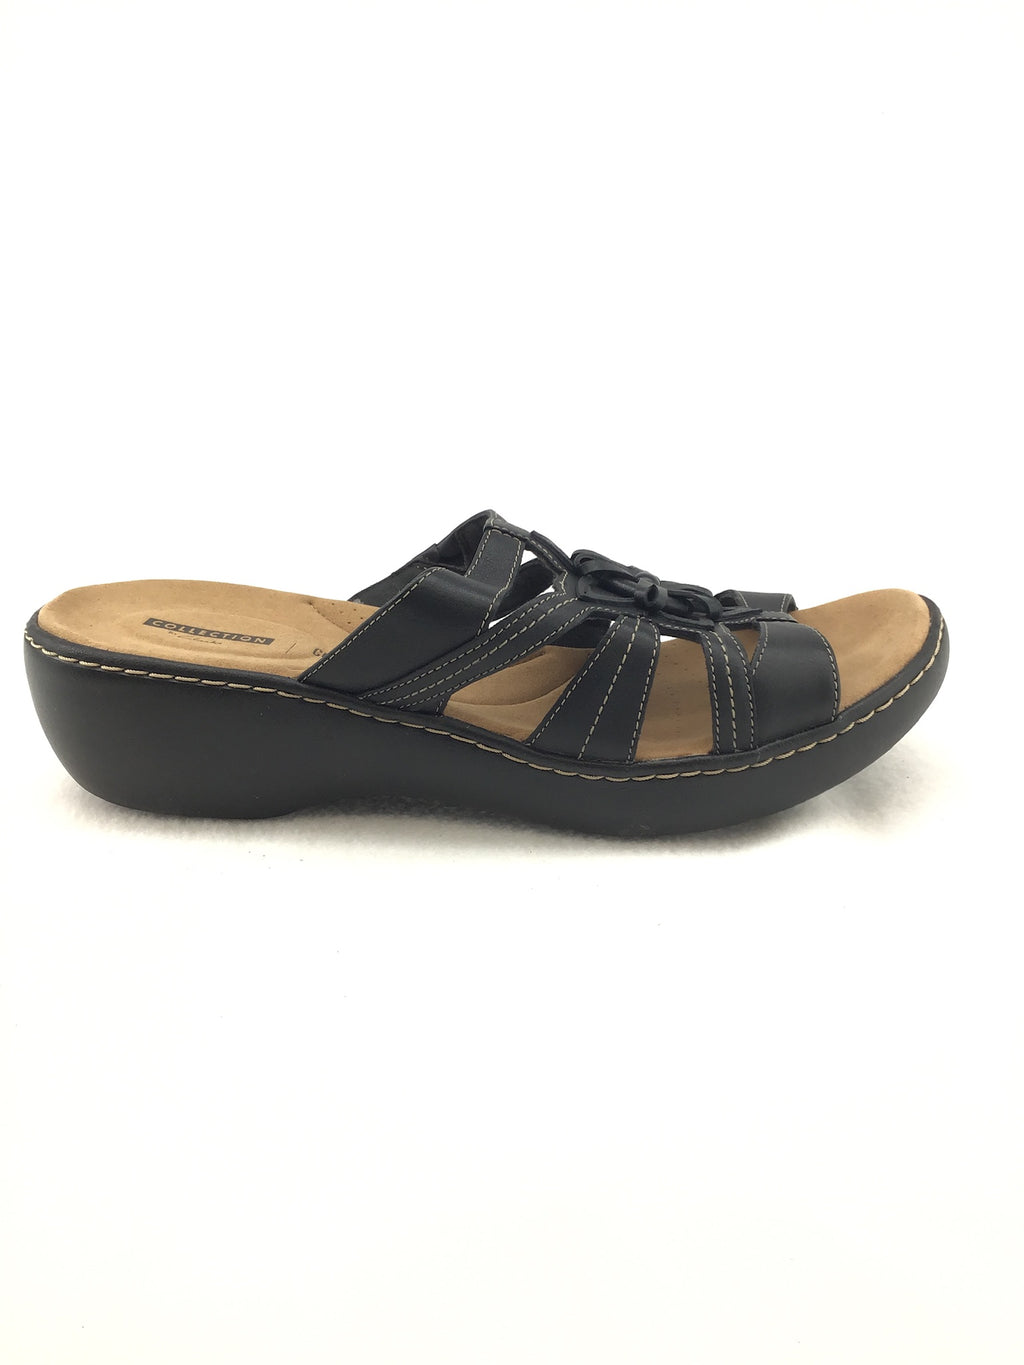 Collection By Clarks Comfort Sandals Size 12